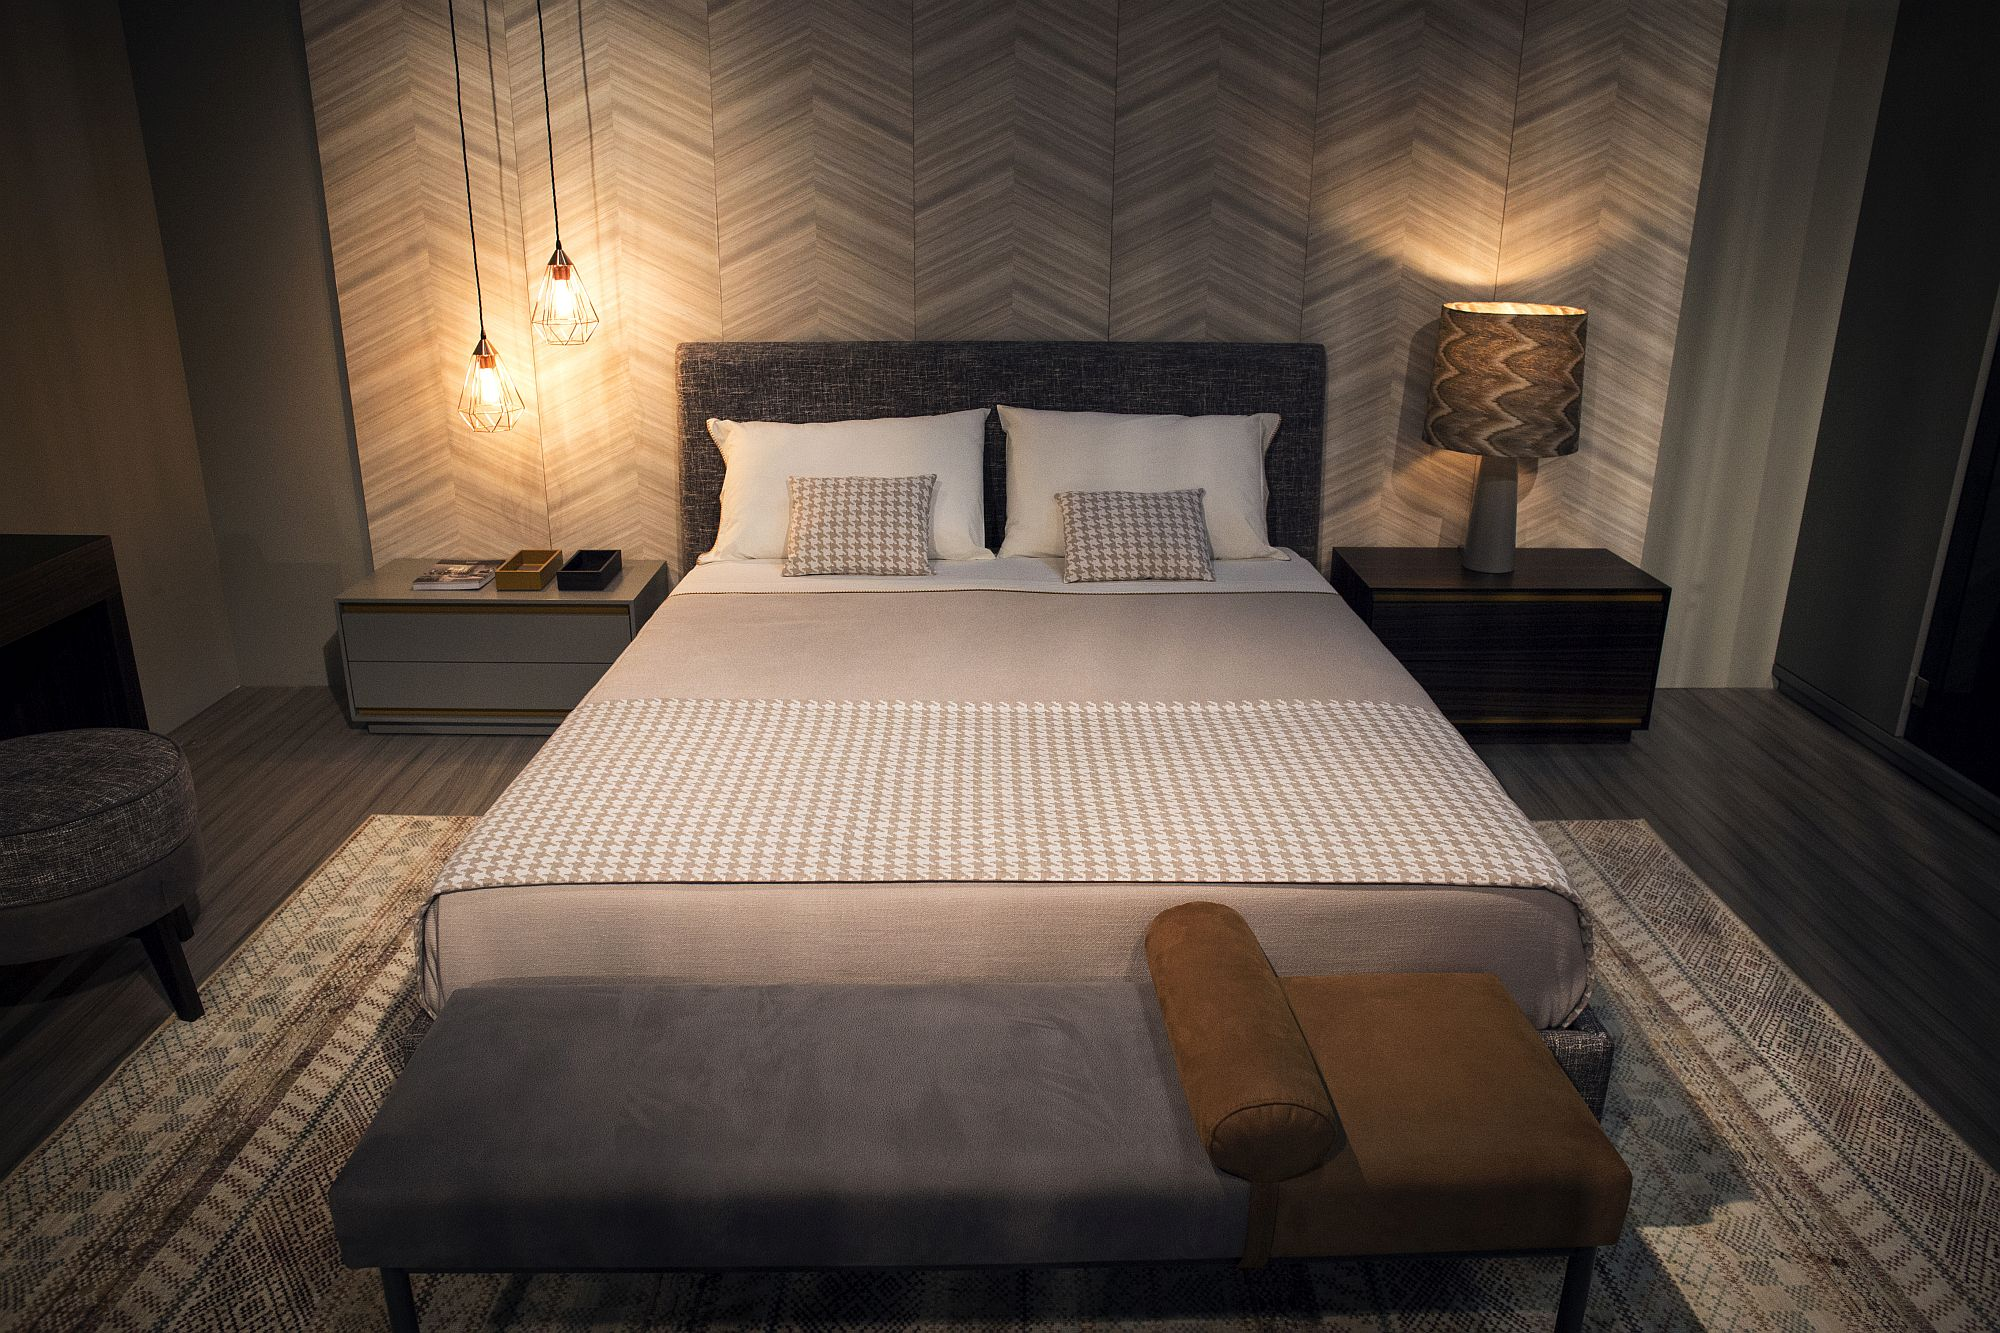 Chevron pattern in the backdrop adds to the geo style of the bedroom